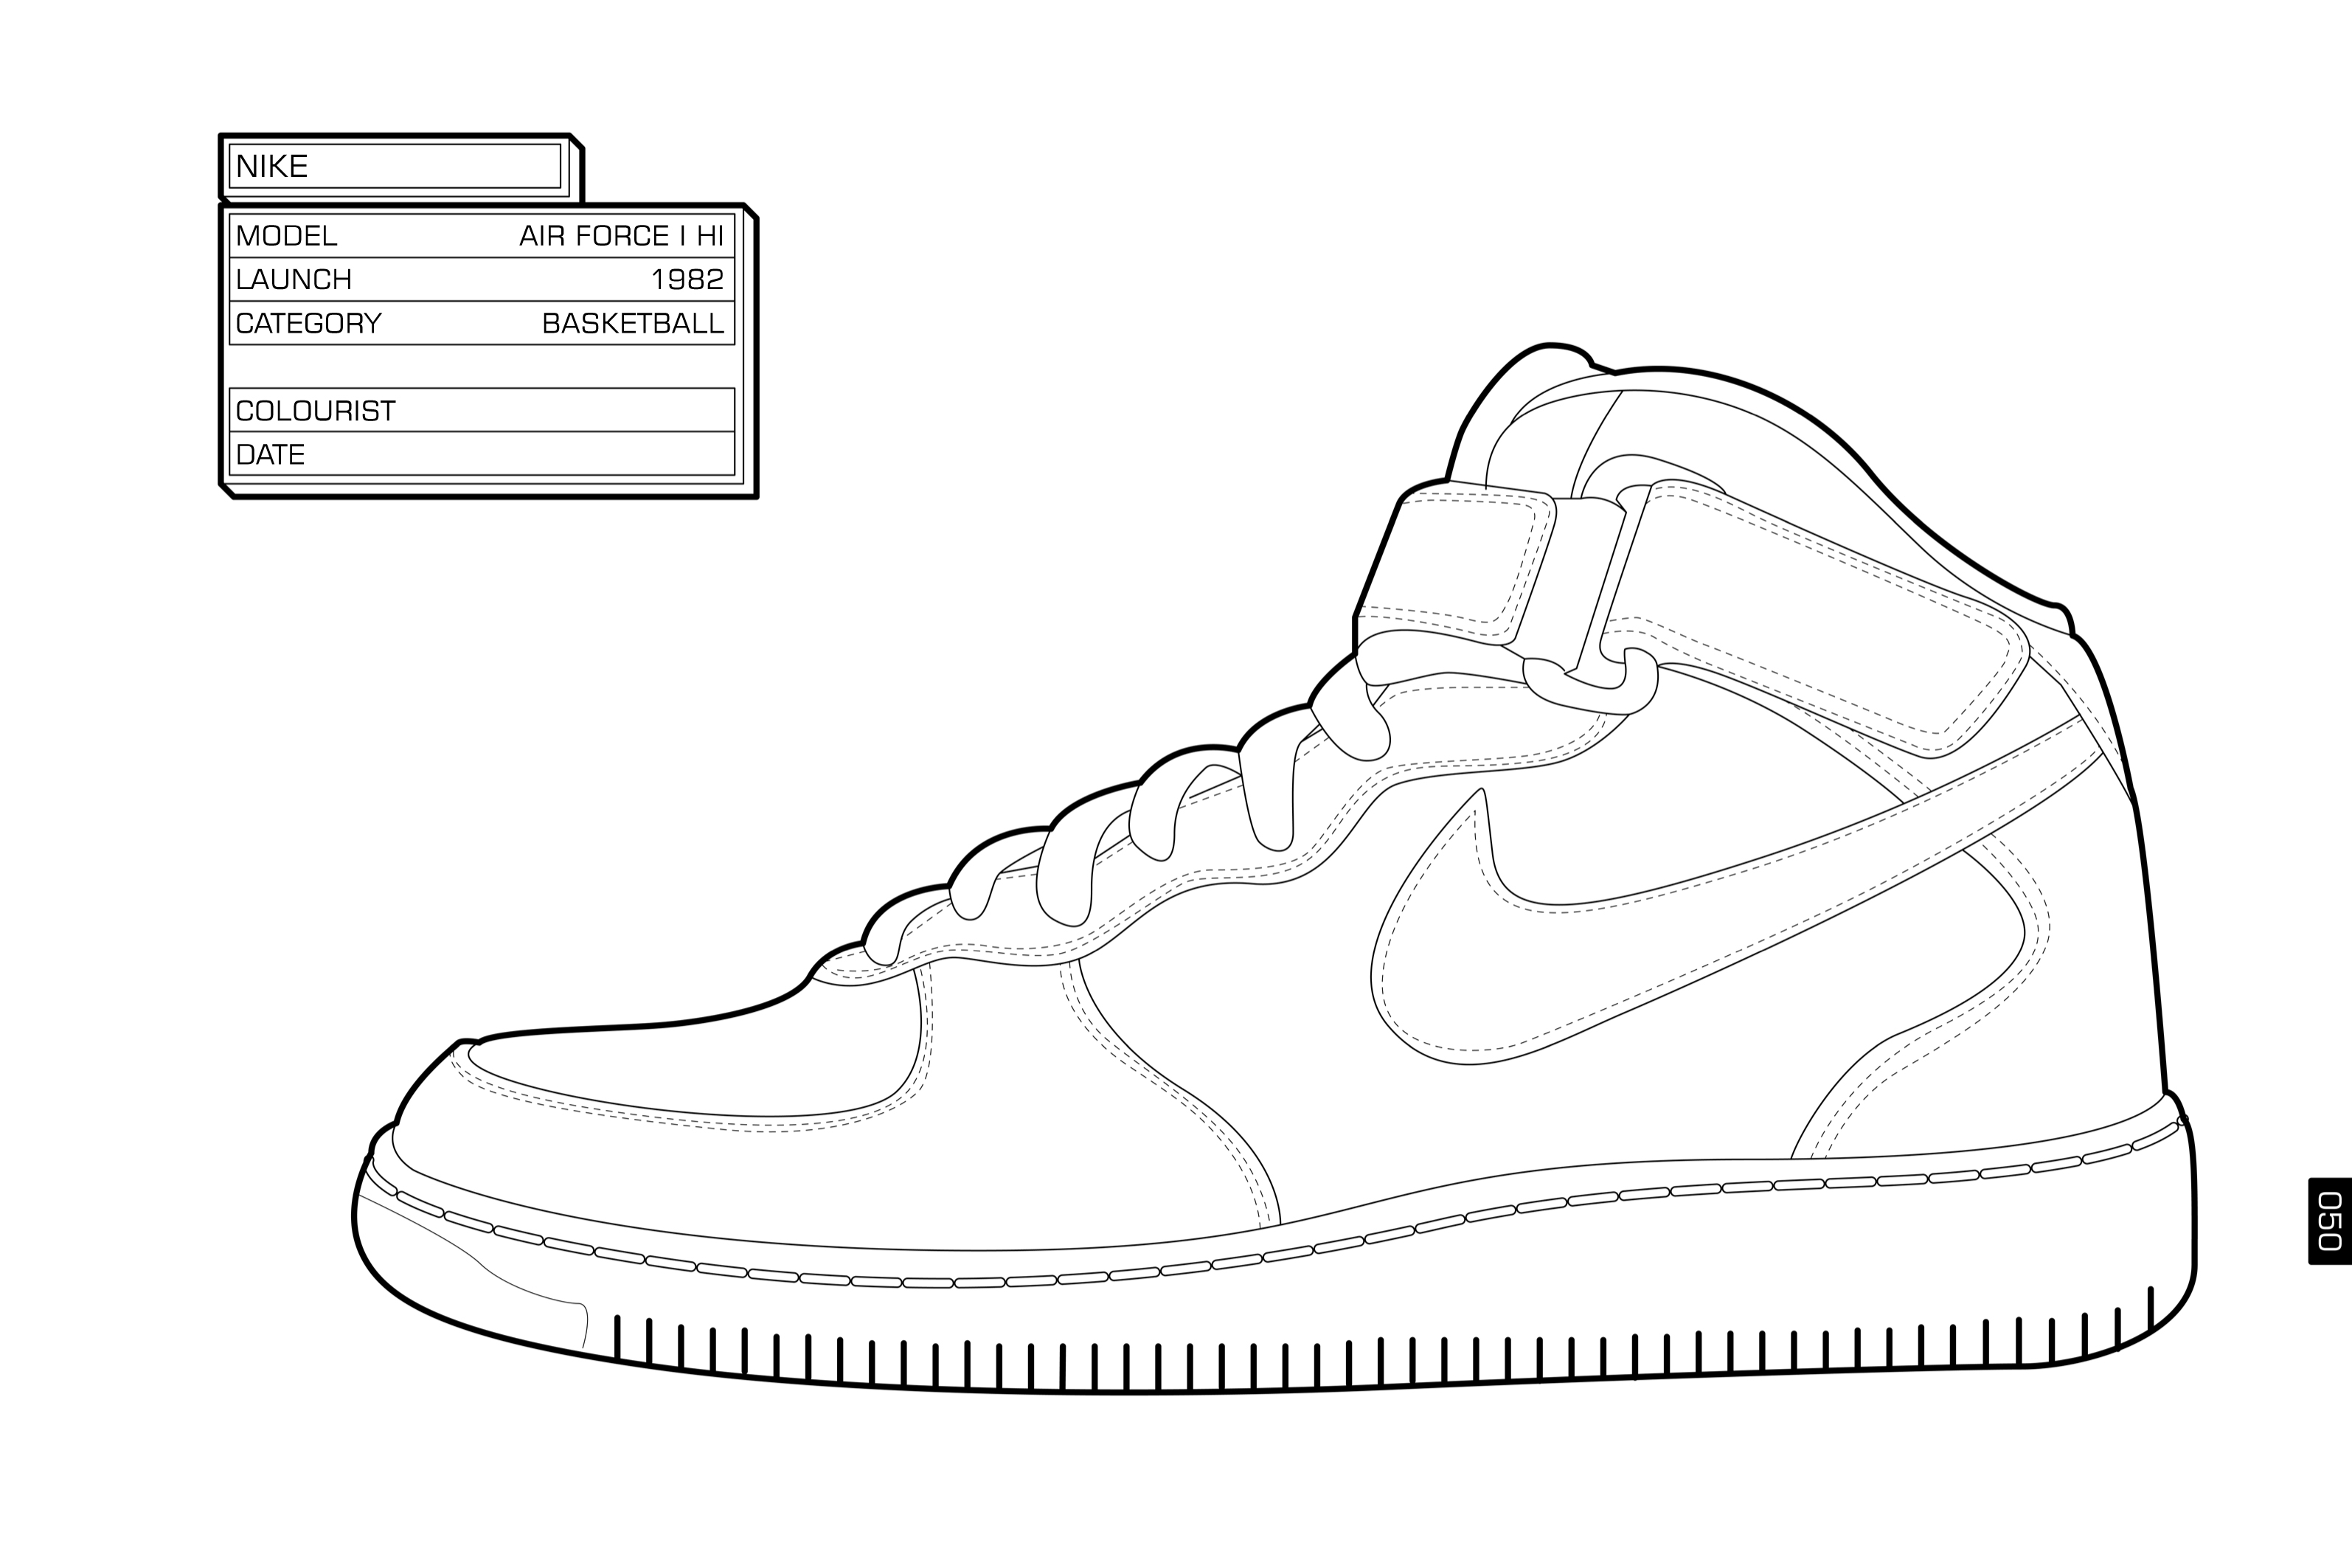 Tennis shoes coloring pages - Printable Jordan Coloring Pages The Sneaker Colouring Book Welovesneaker